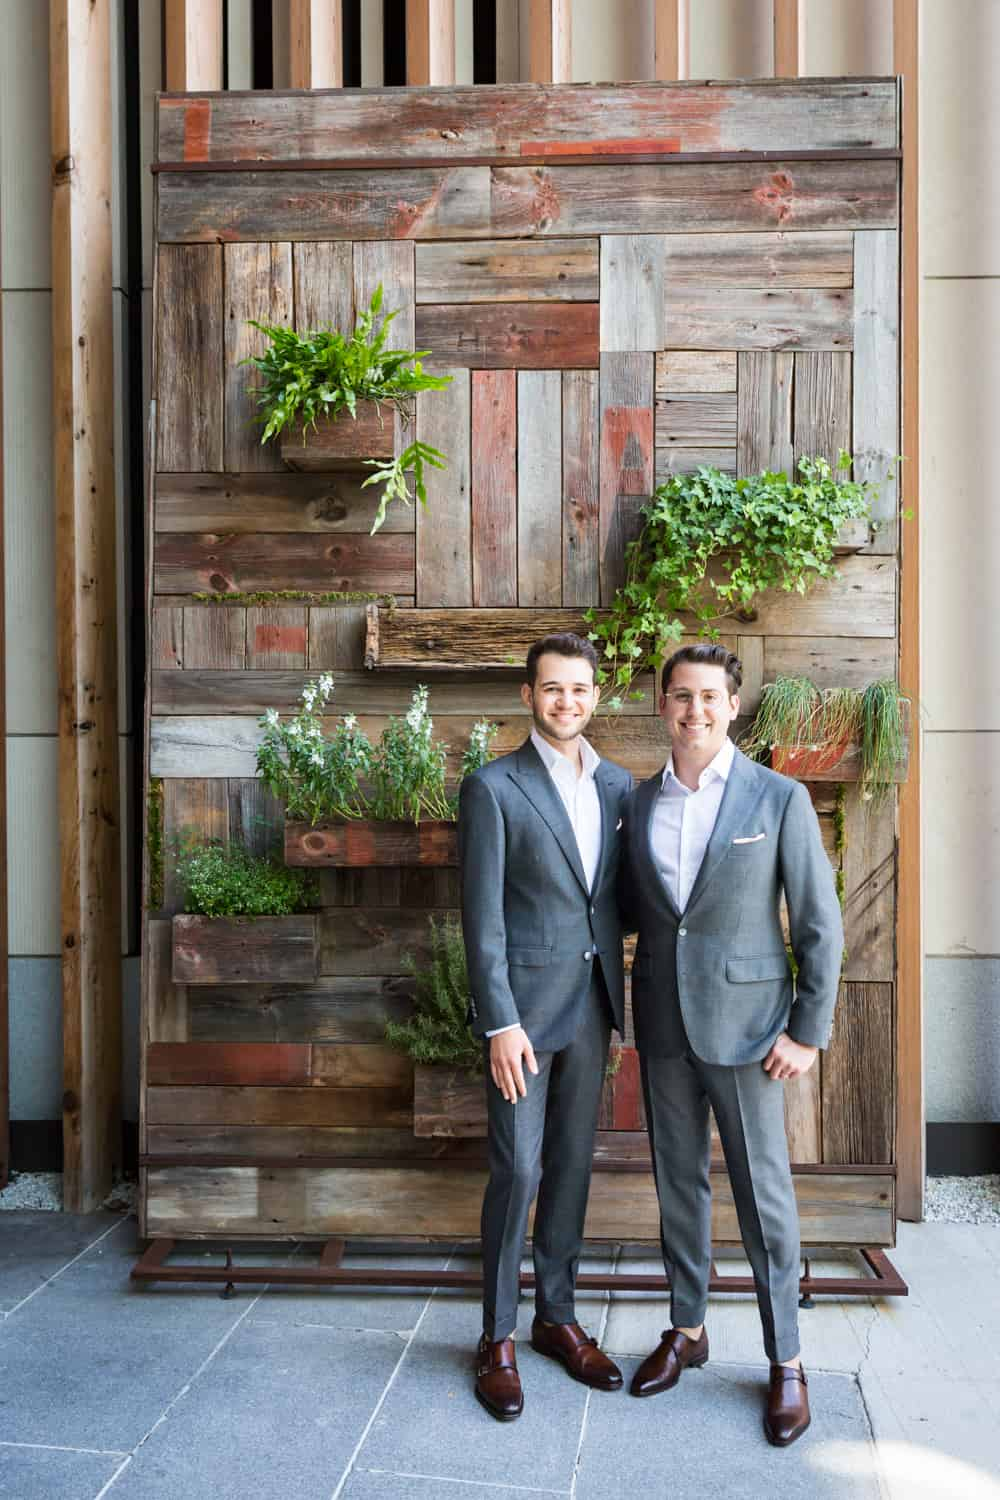 Greenpoint Loft wedding photos of two grooms in front of wall with plants